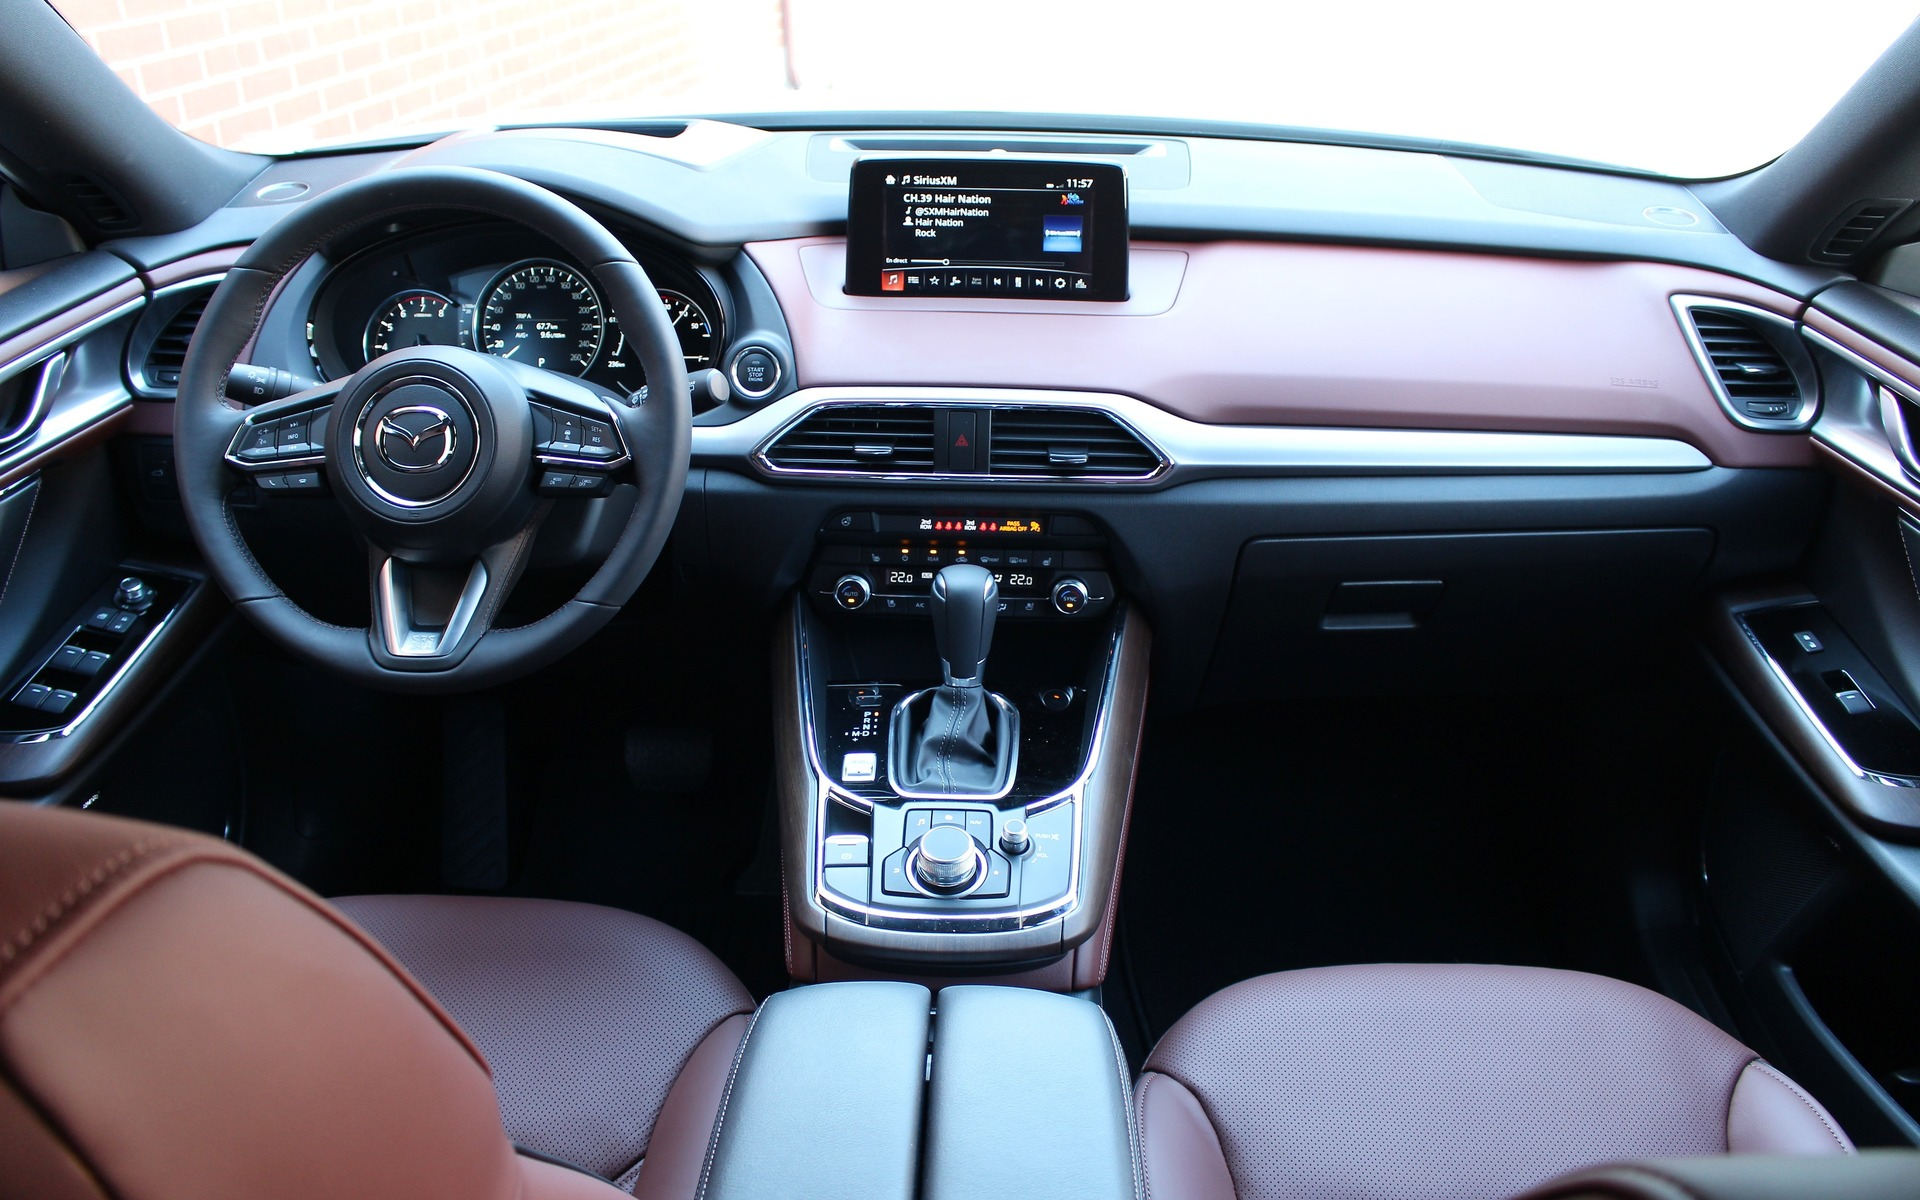 2019 Mazda CX-9: The Gymnast - The Car Guide